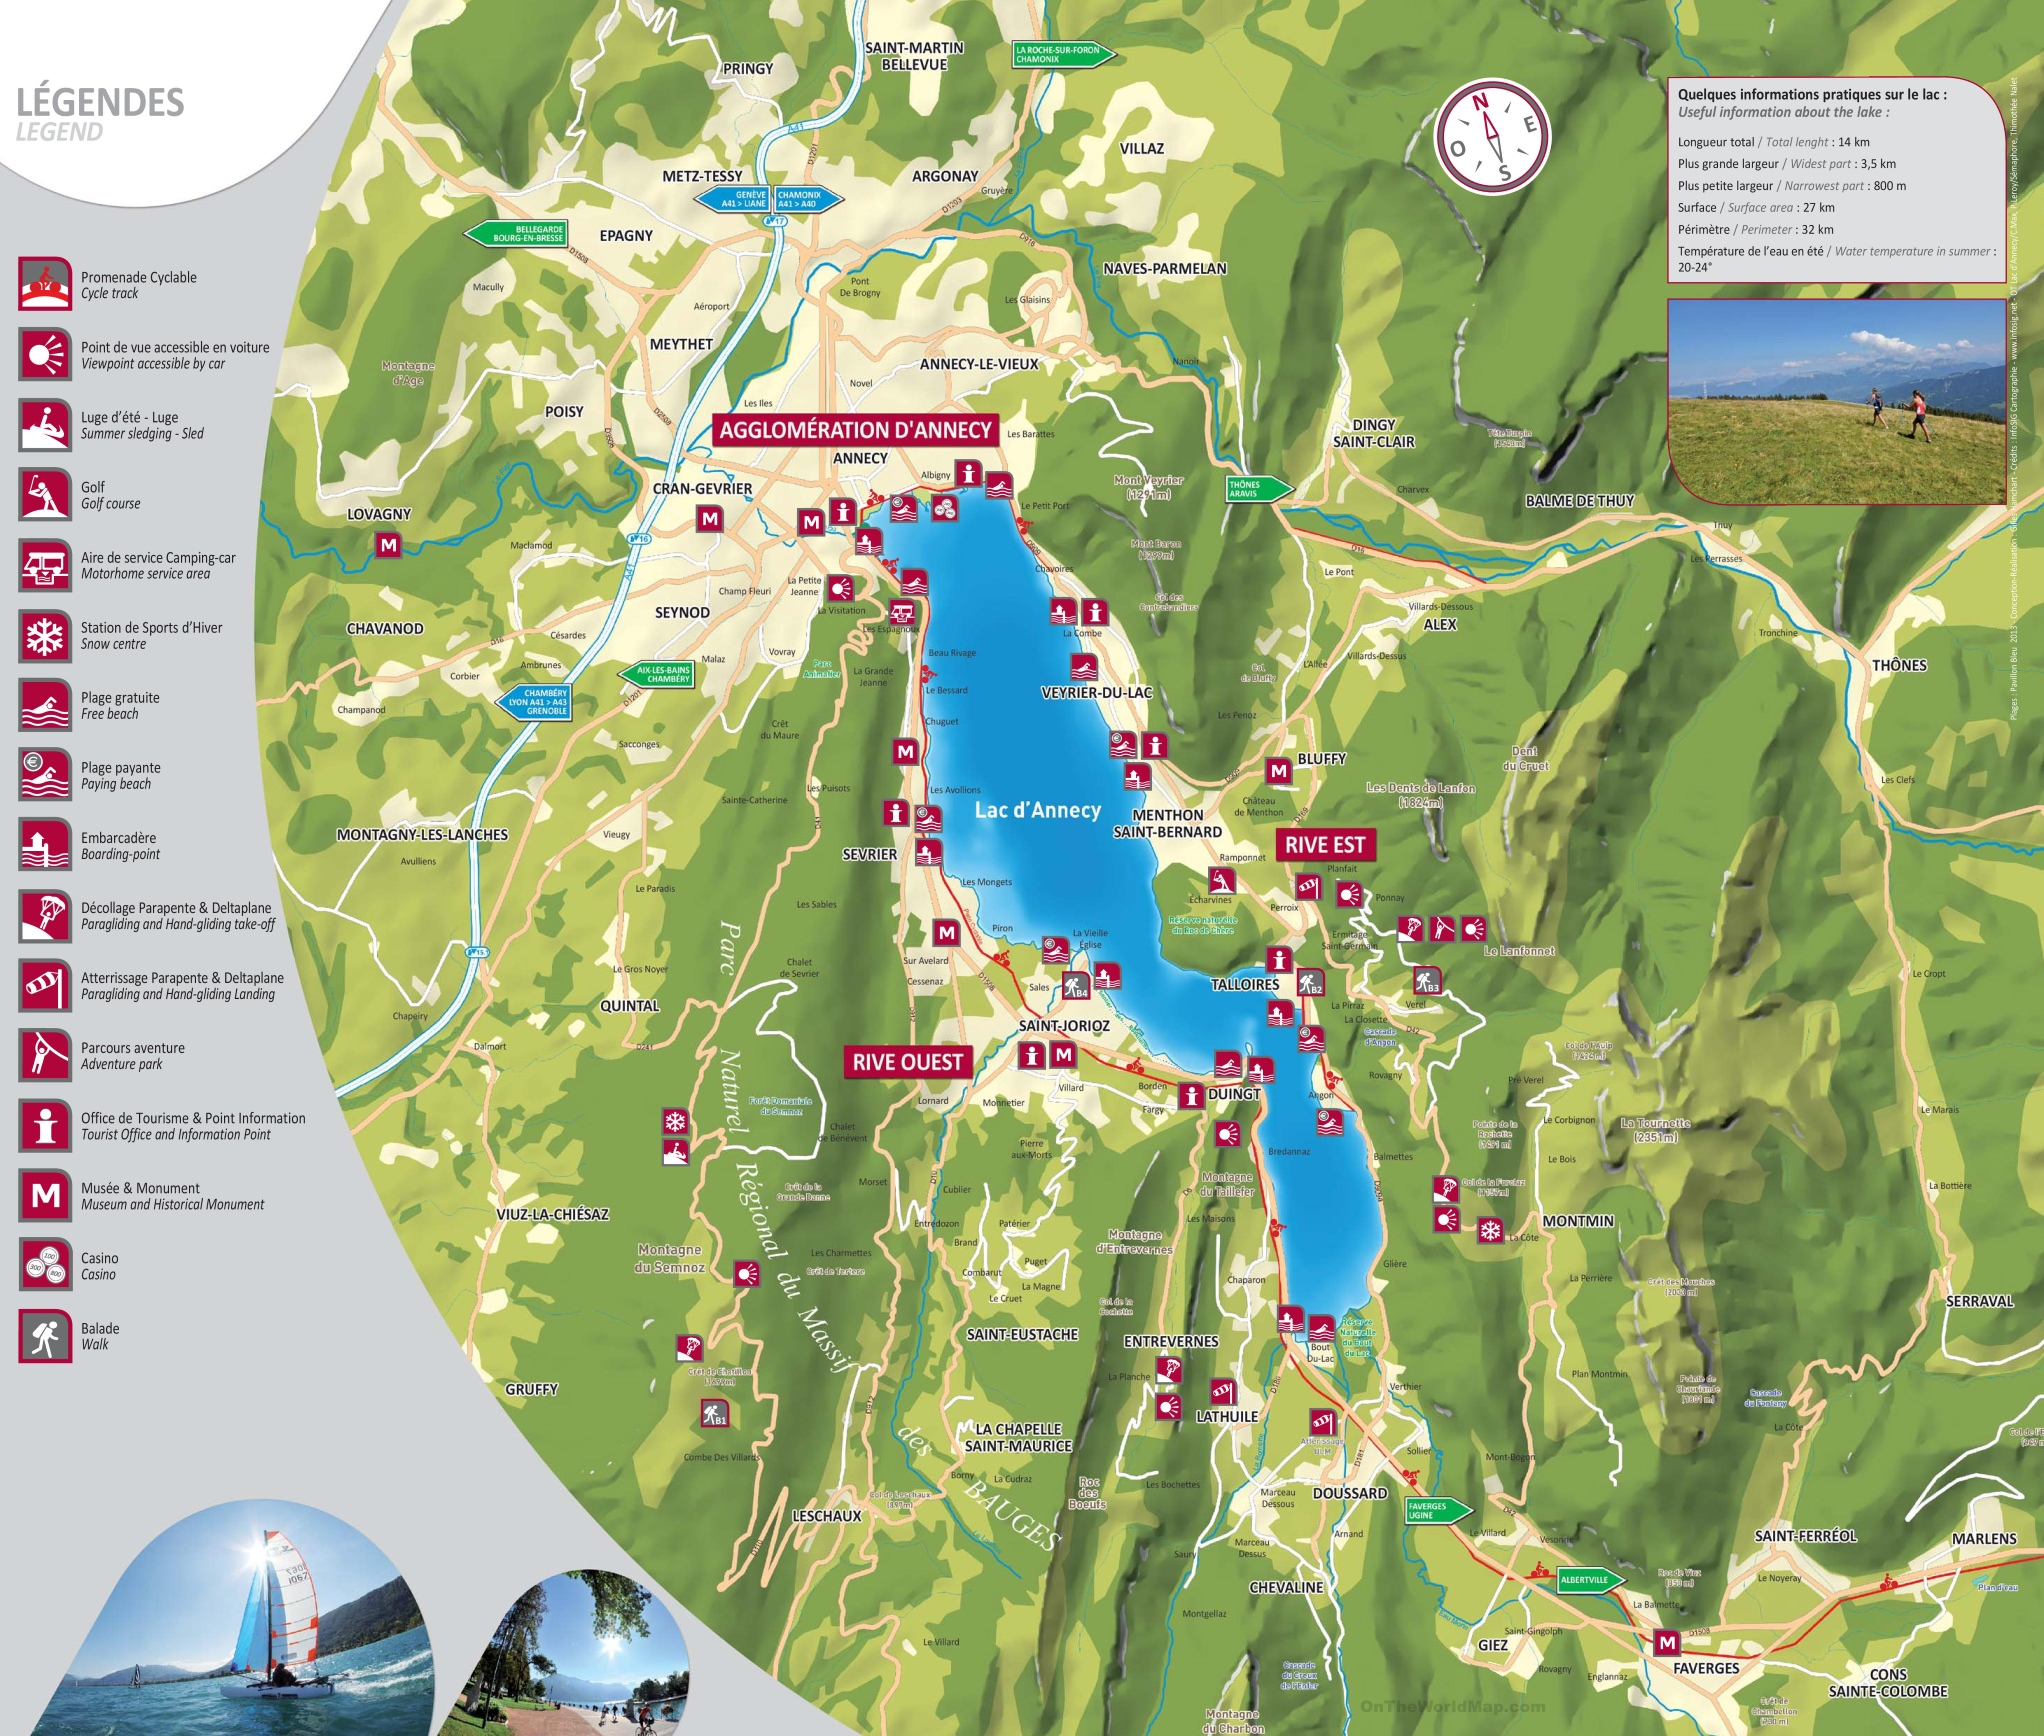 los angeles tourist map with Tourist Map Of Lake Annecy on Sri Lanka also Freiburg Tourist Attractions Map also Verona Tourist Attractions Map besides Trento Tourist Map together with Melbourne Zoo Map.